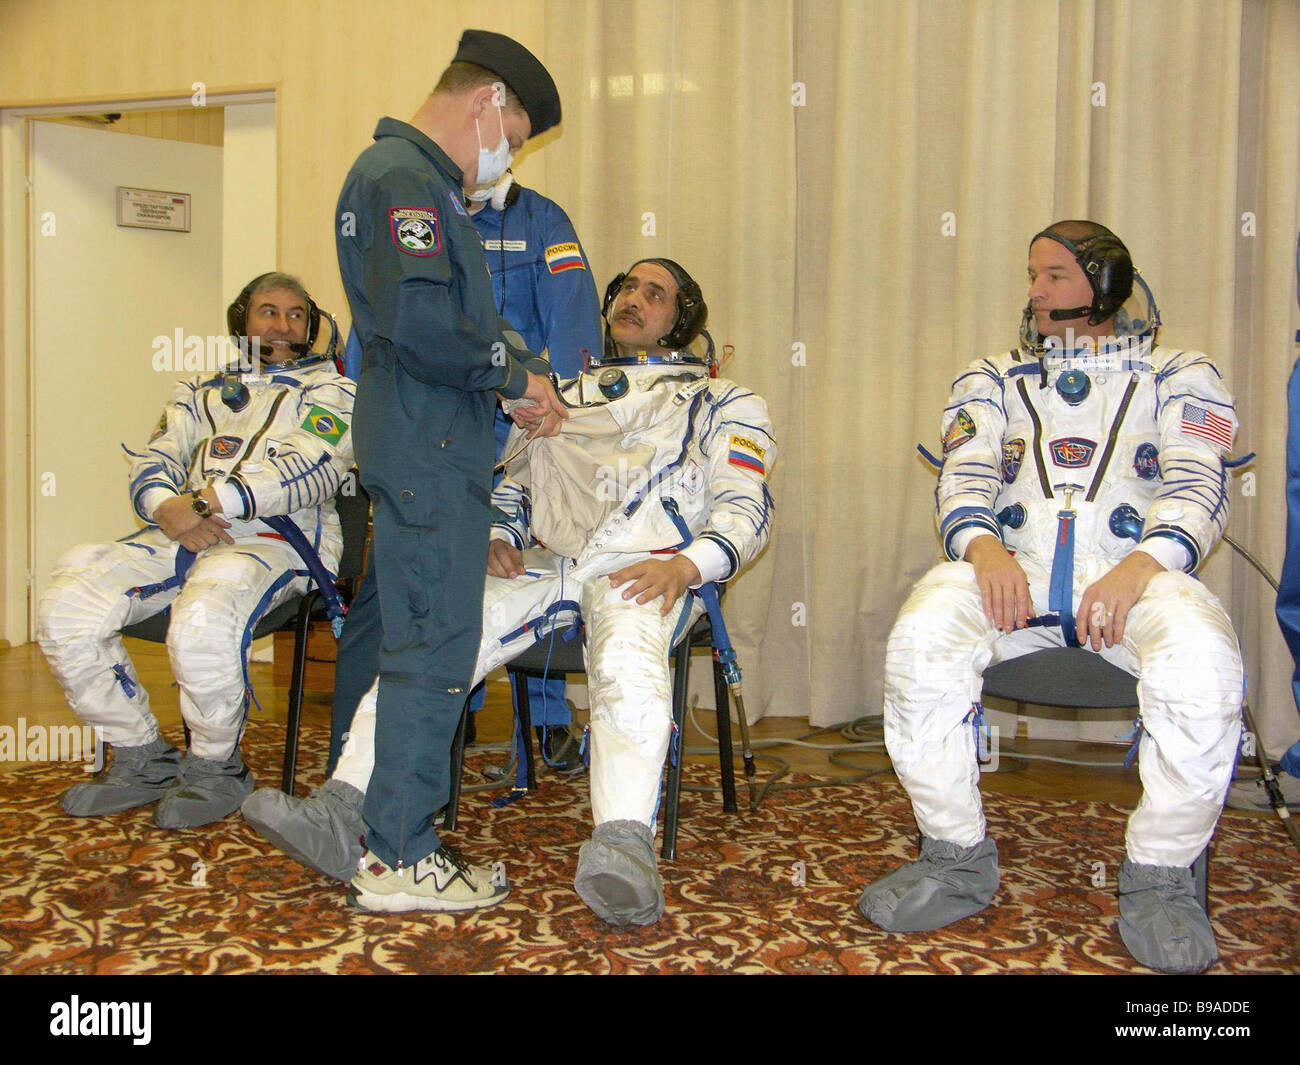 On the Baikonur cosmodrome the flight and stand by crews of the Soyuz TMA 8 spaceship had a training and tried on - Stock Image